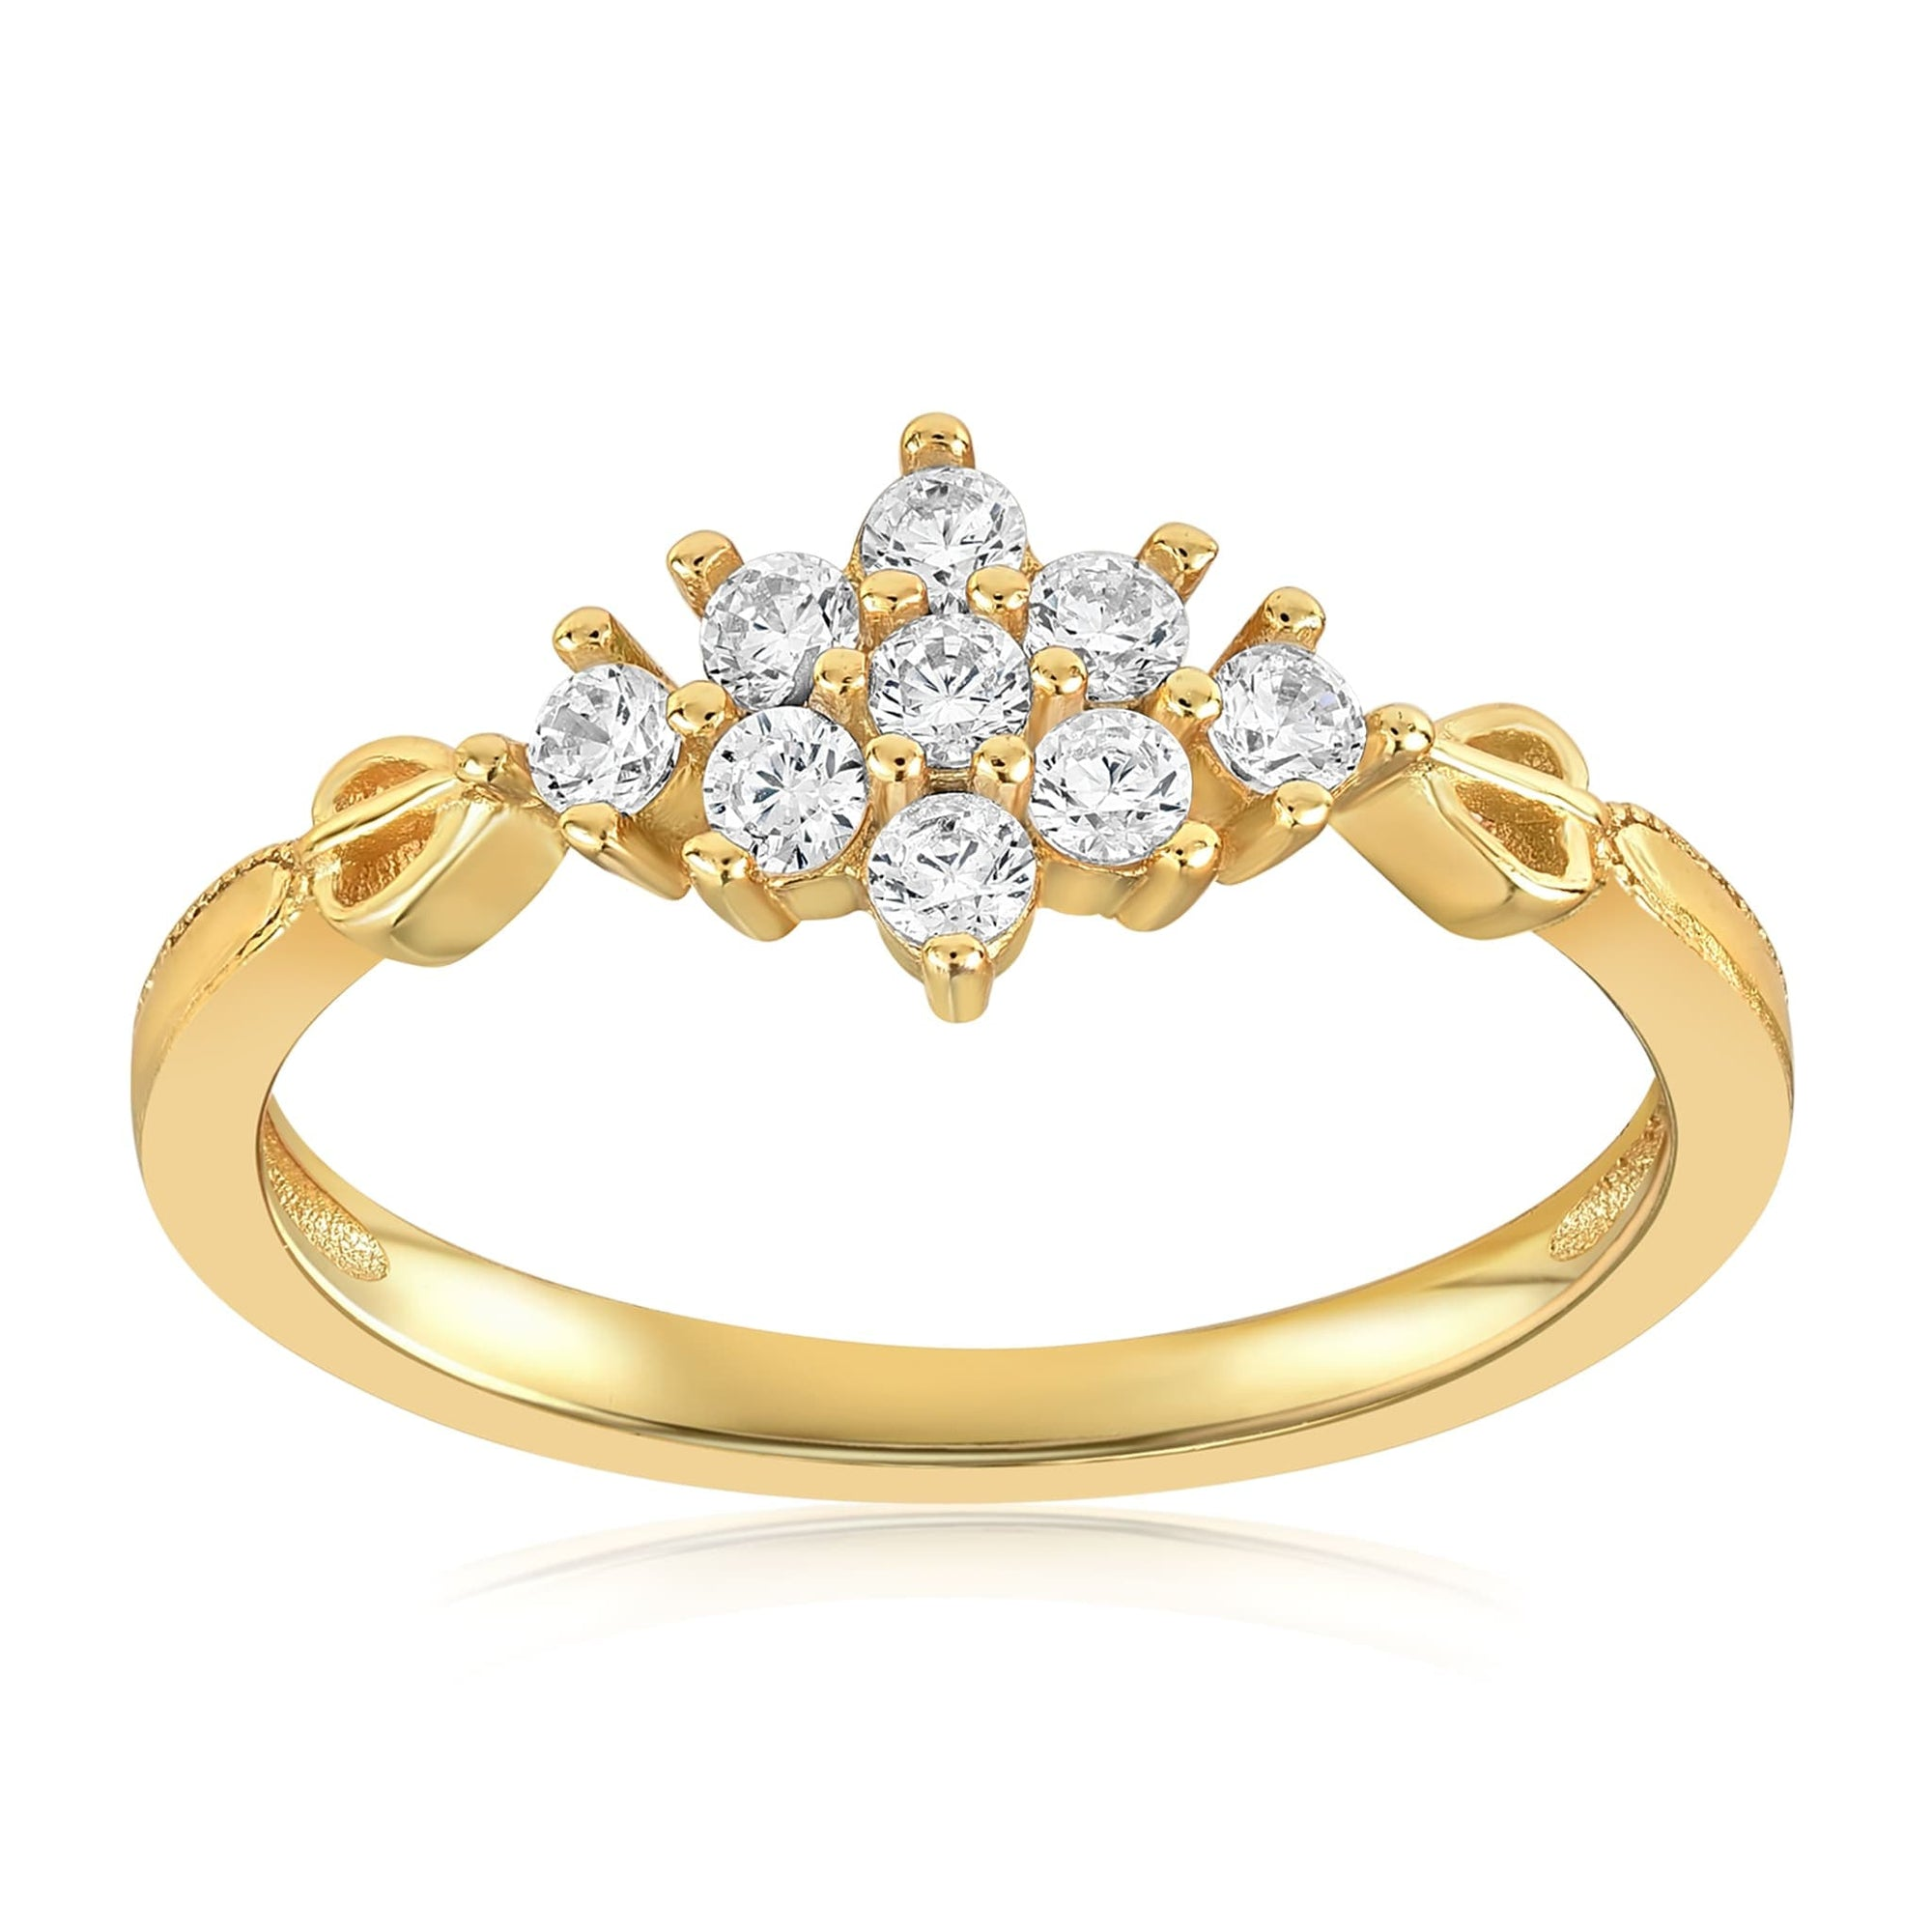 Sarah Snowflake Dainty Ring - Front View Facing Up - 18K Yellow Gold Vermeil